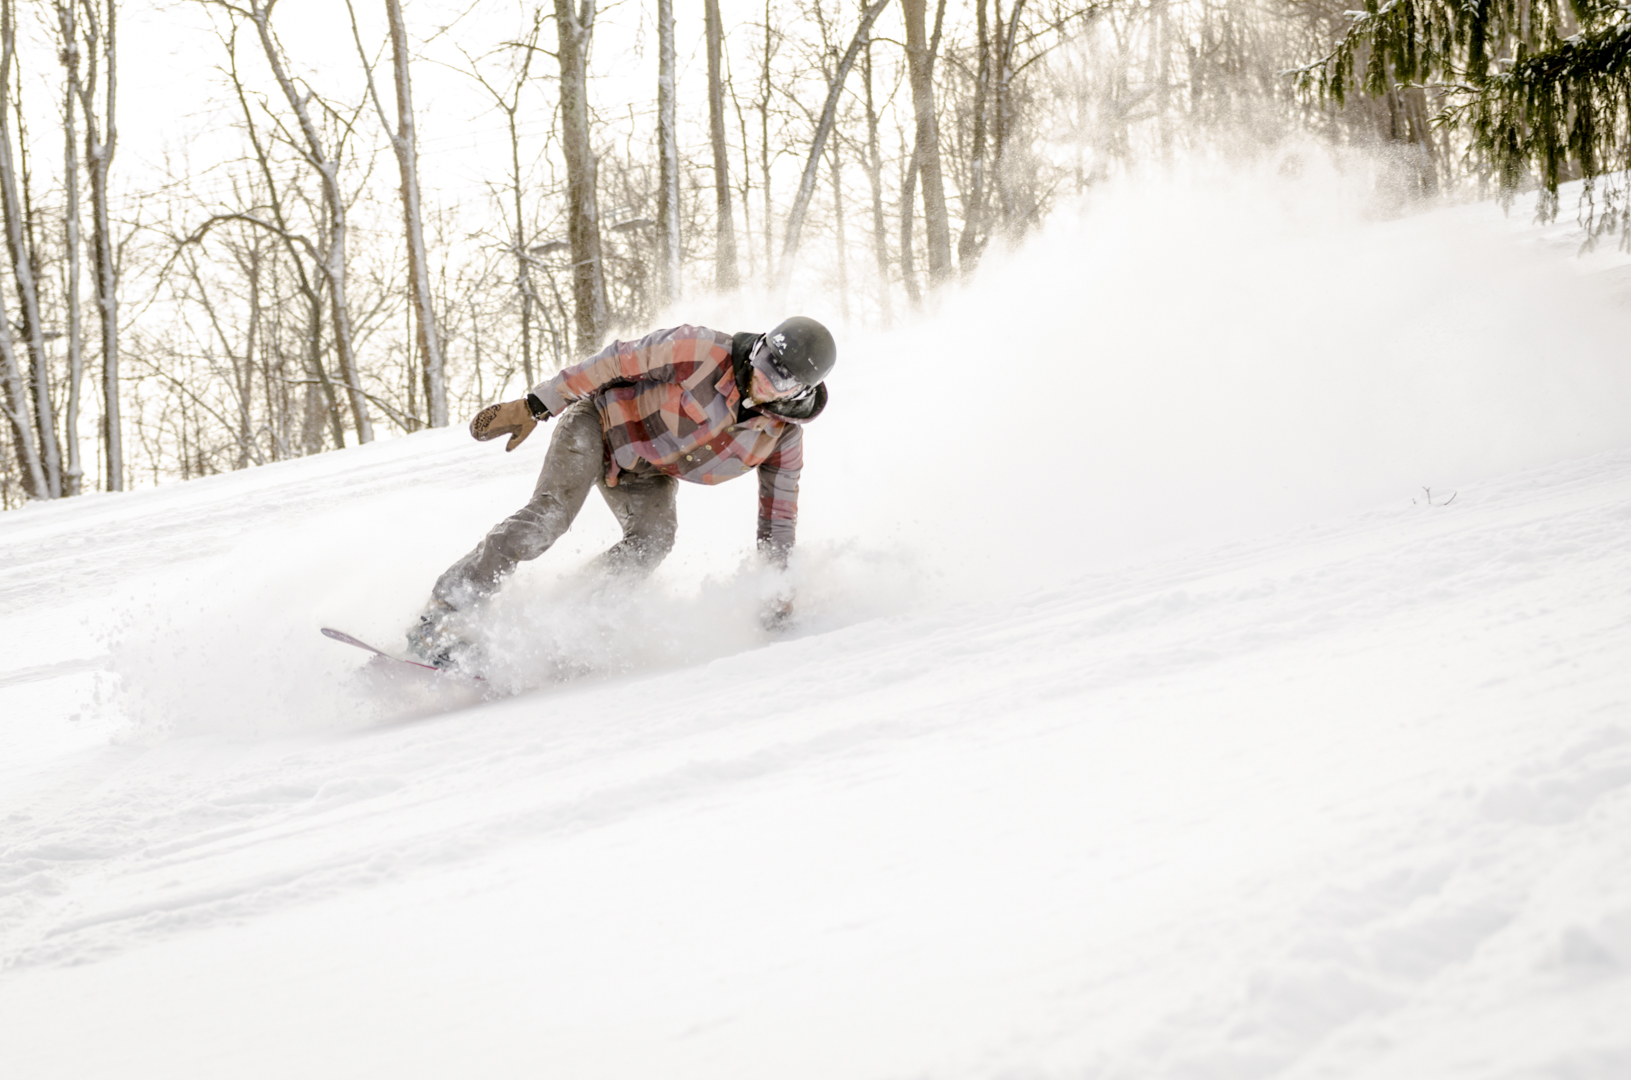 Ohio Powder Day at Snow Trails